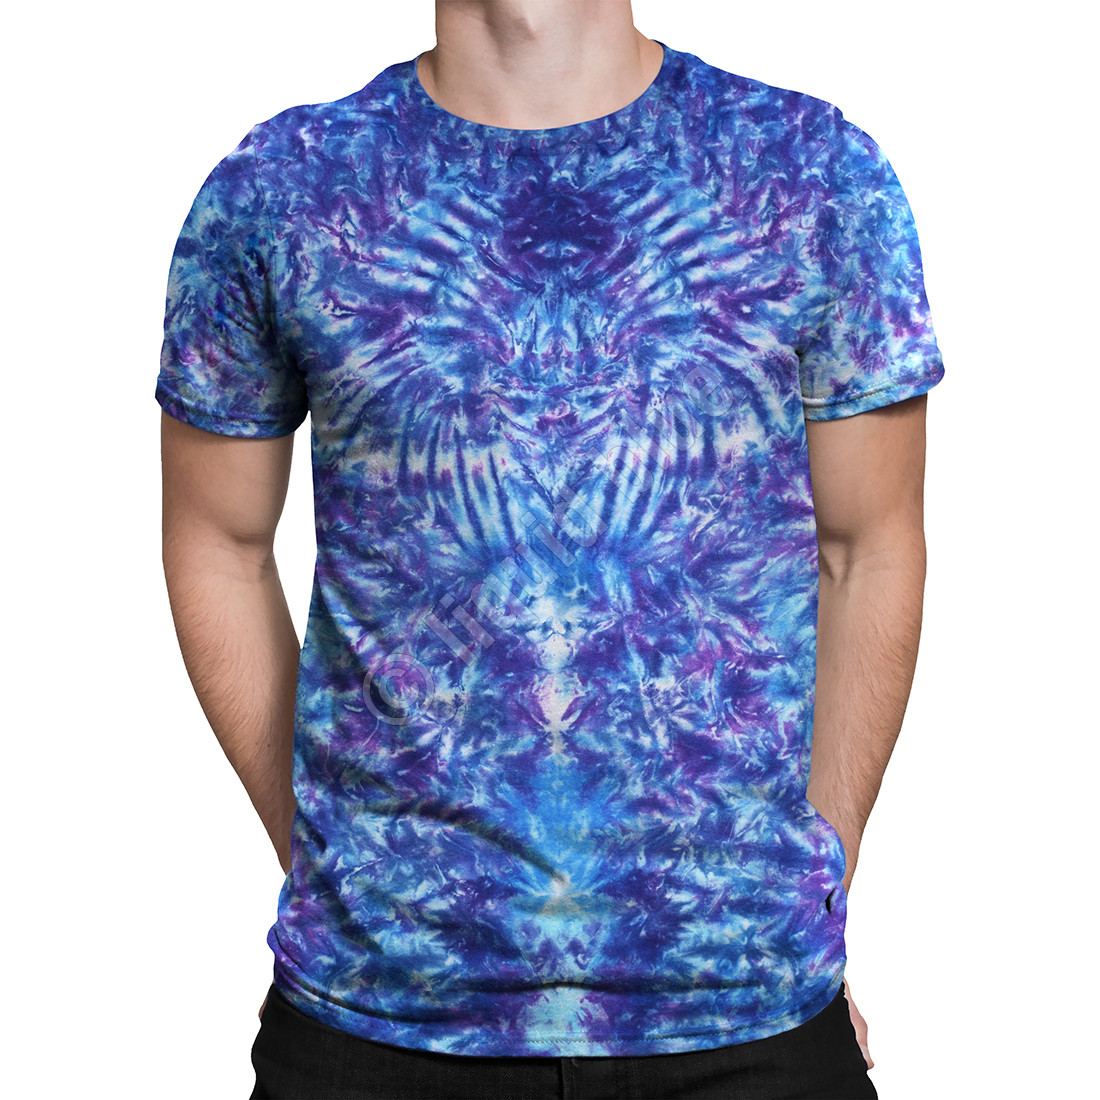 Crazy Blue Krinkle Unprinted Tie-Dye T-Shirt